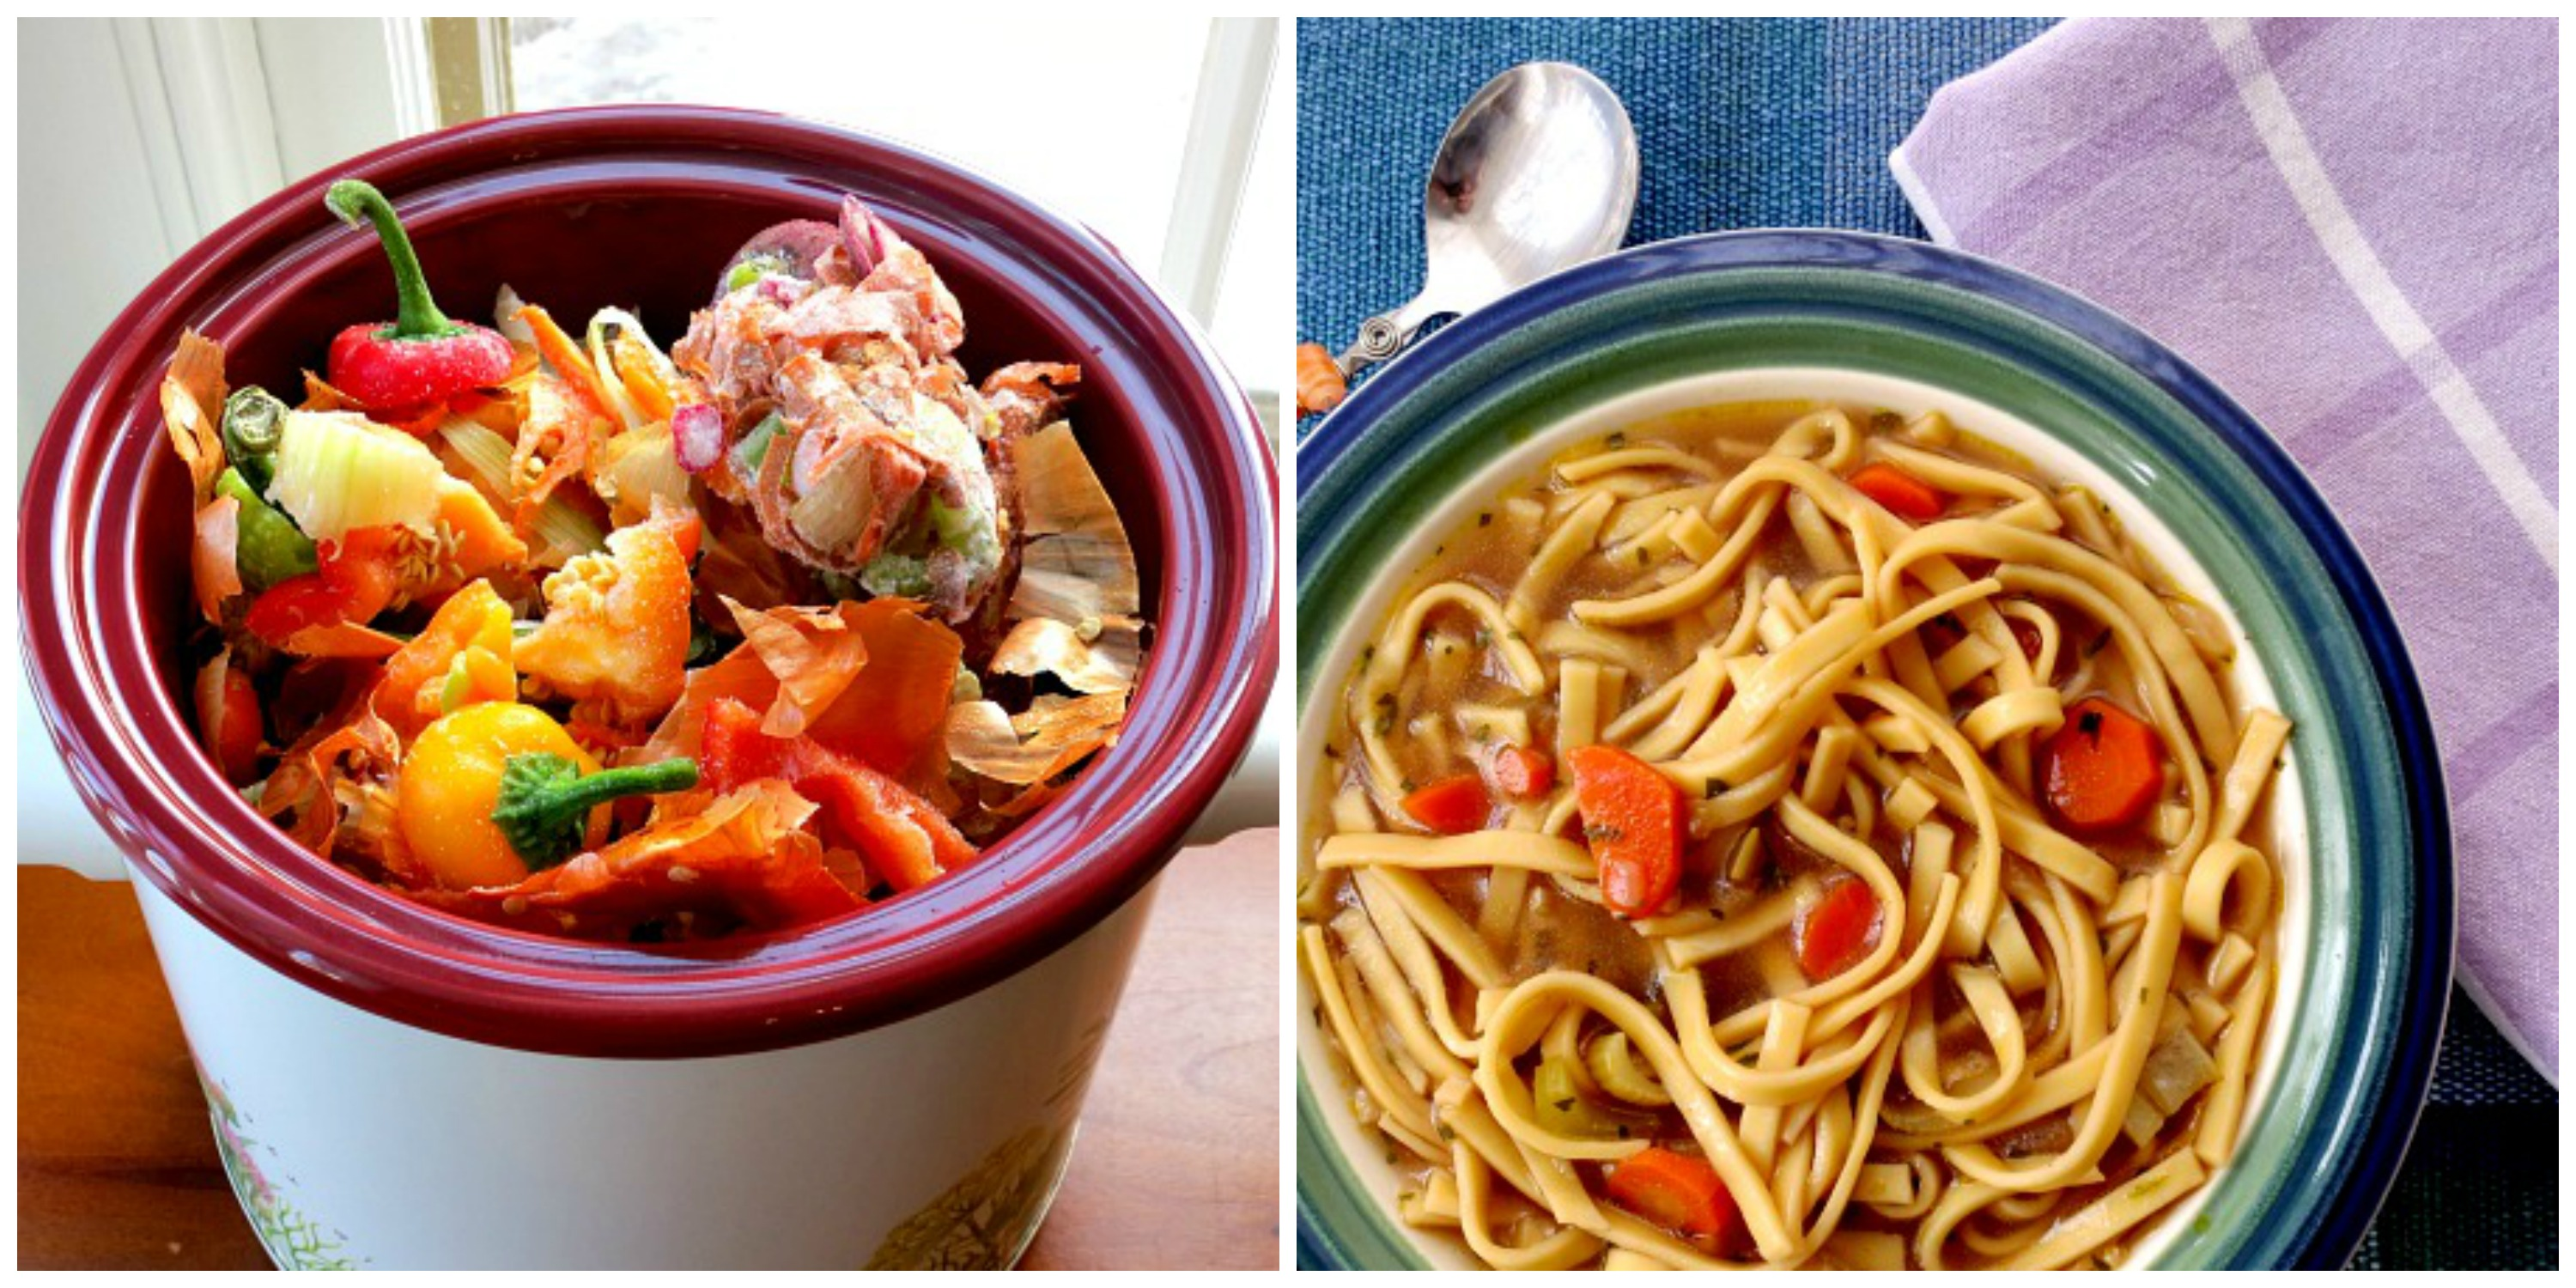 Veggie Stock and Chickenless Noodle Soup Collage